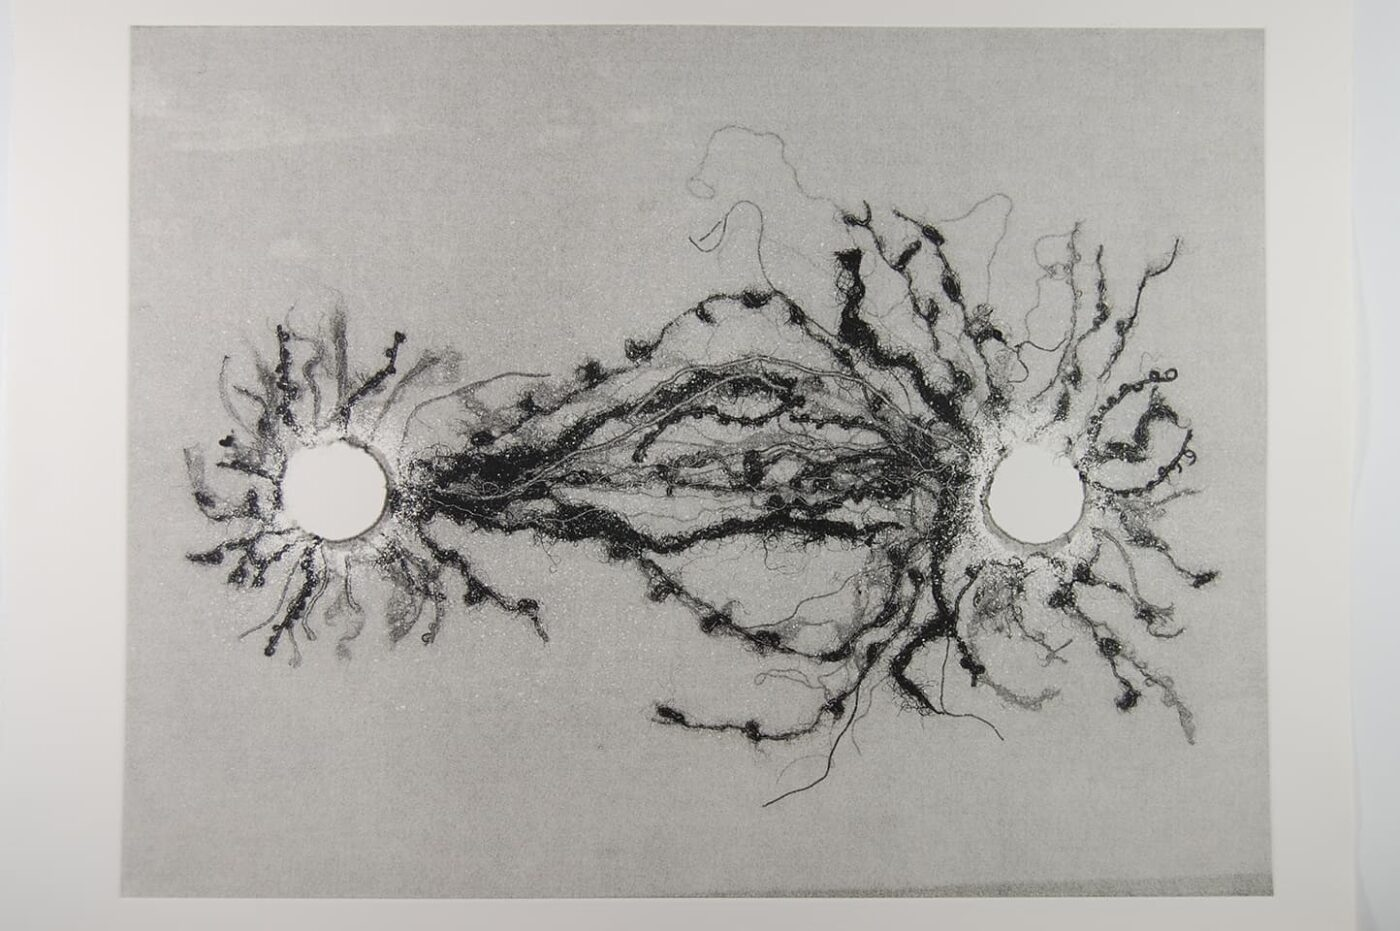 <strong>Out of Body 3.3</strong>, Susan Aldworth, monoprint, 56 x 76 cms, 2009.